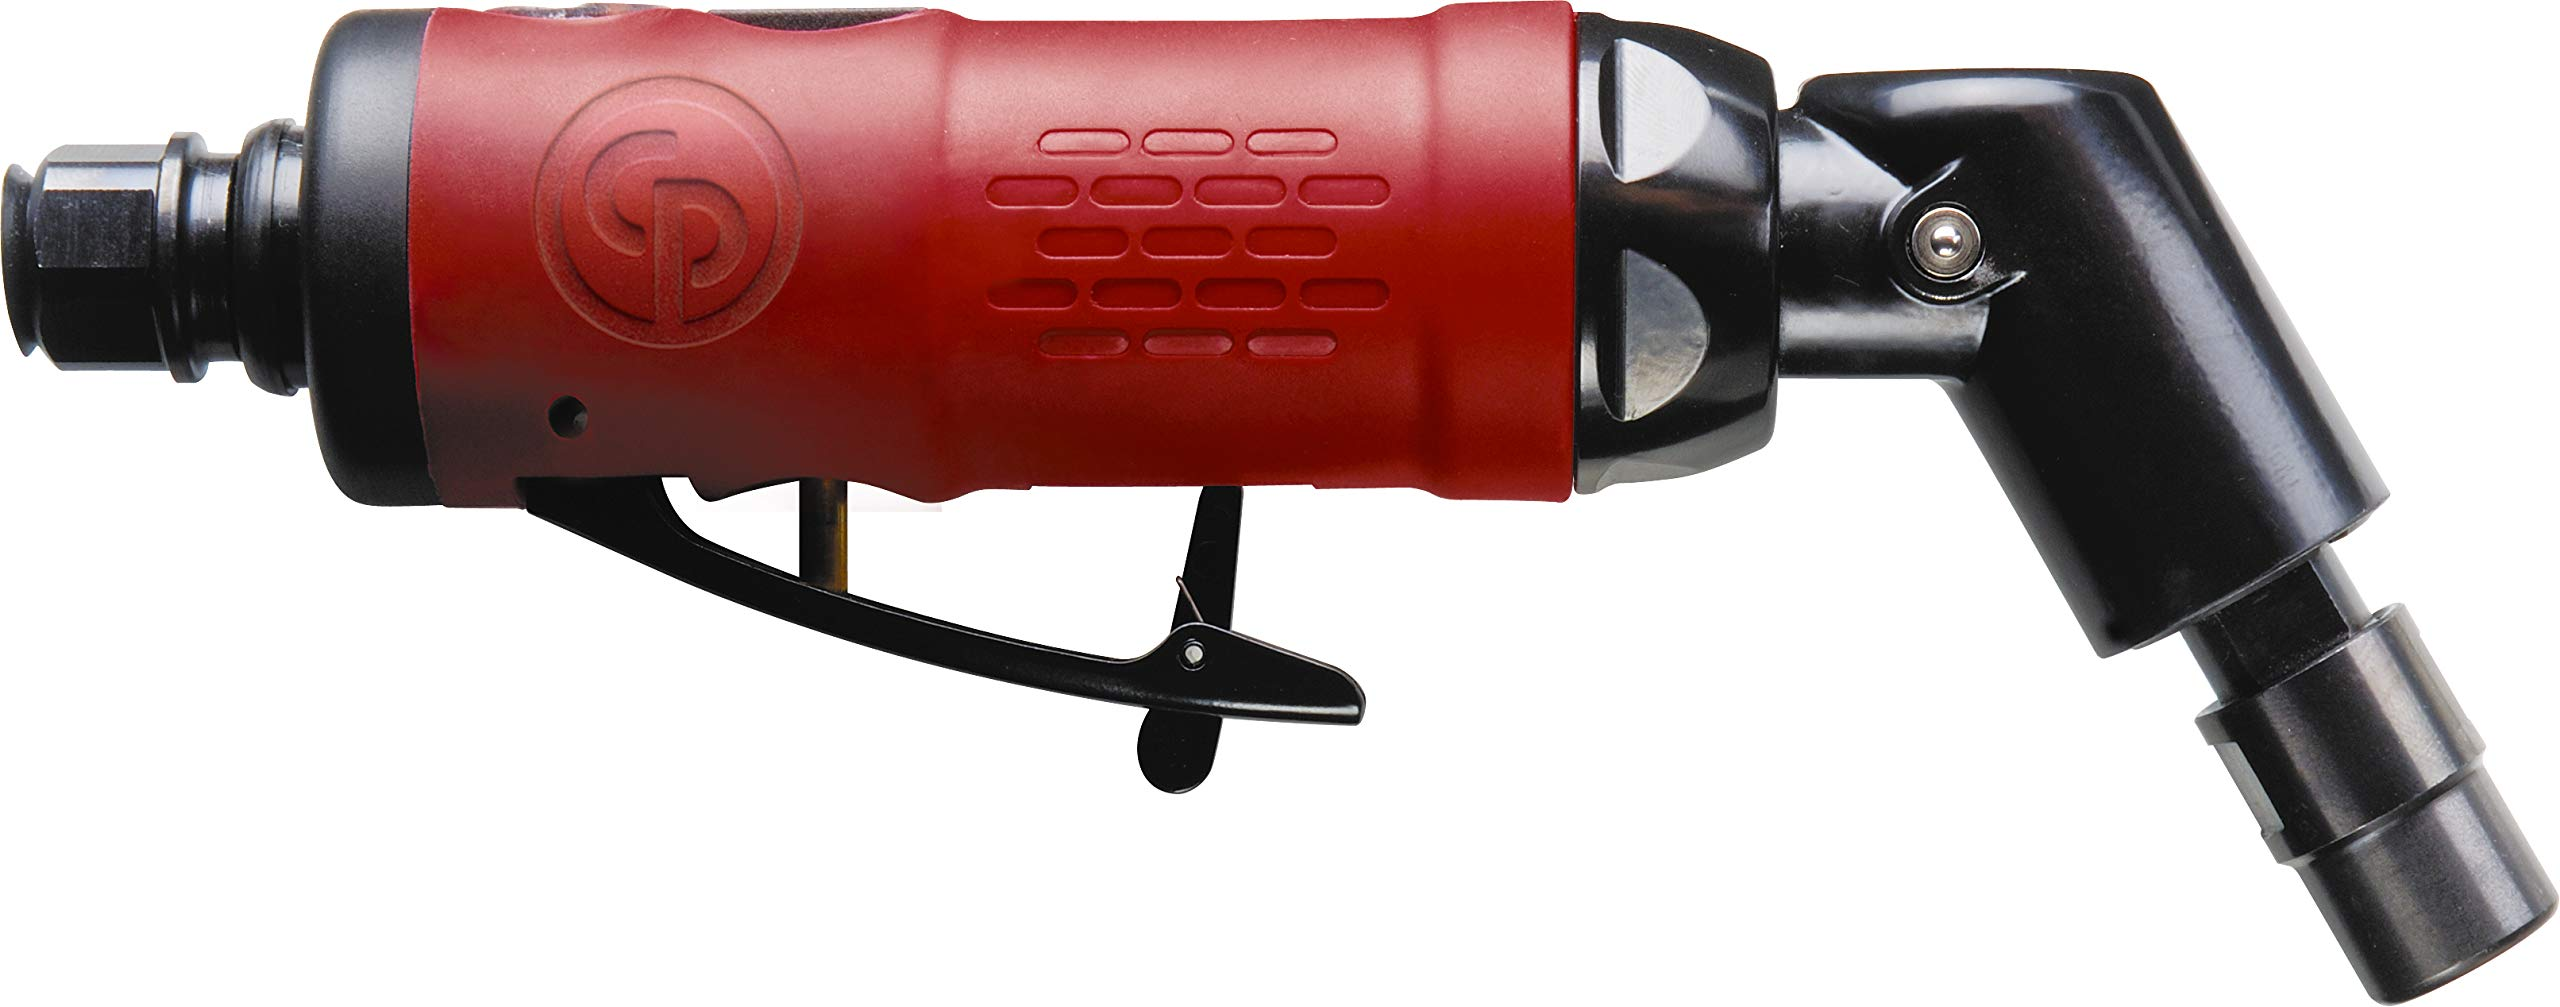 Chicago Pneumatic CP9108Q-B Heavy Duty Die Grinder with Inbuilt Air Regulator and 120 Degree Angled Shaft, 23,000 RPM